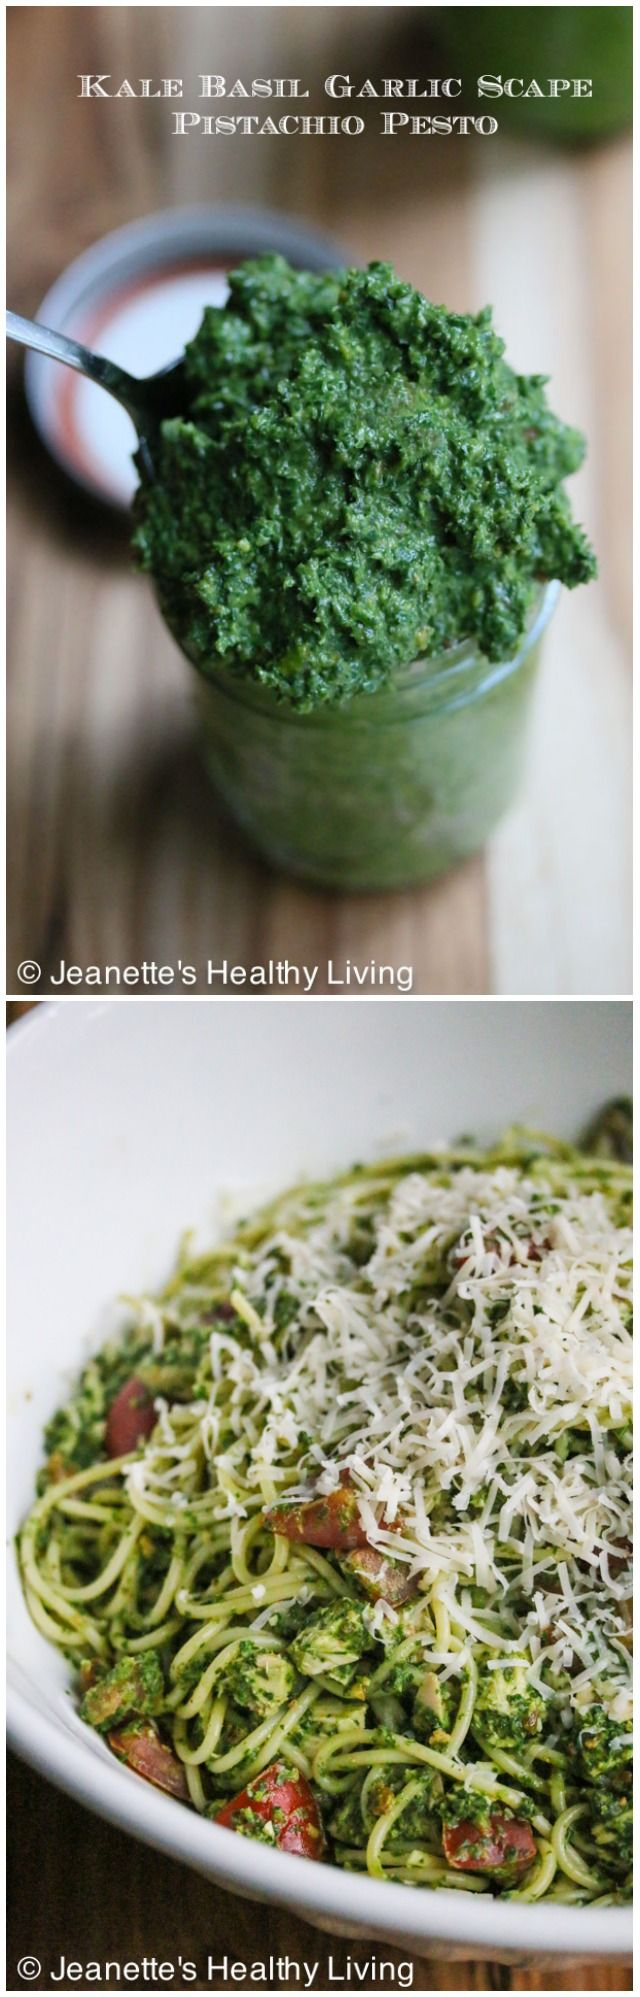 Kale Basil Pistachio Garlic Scape Pesto Recipe - Jeanette's Healthy Living